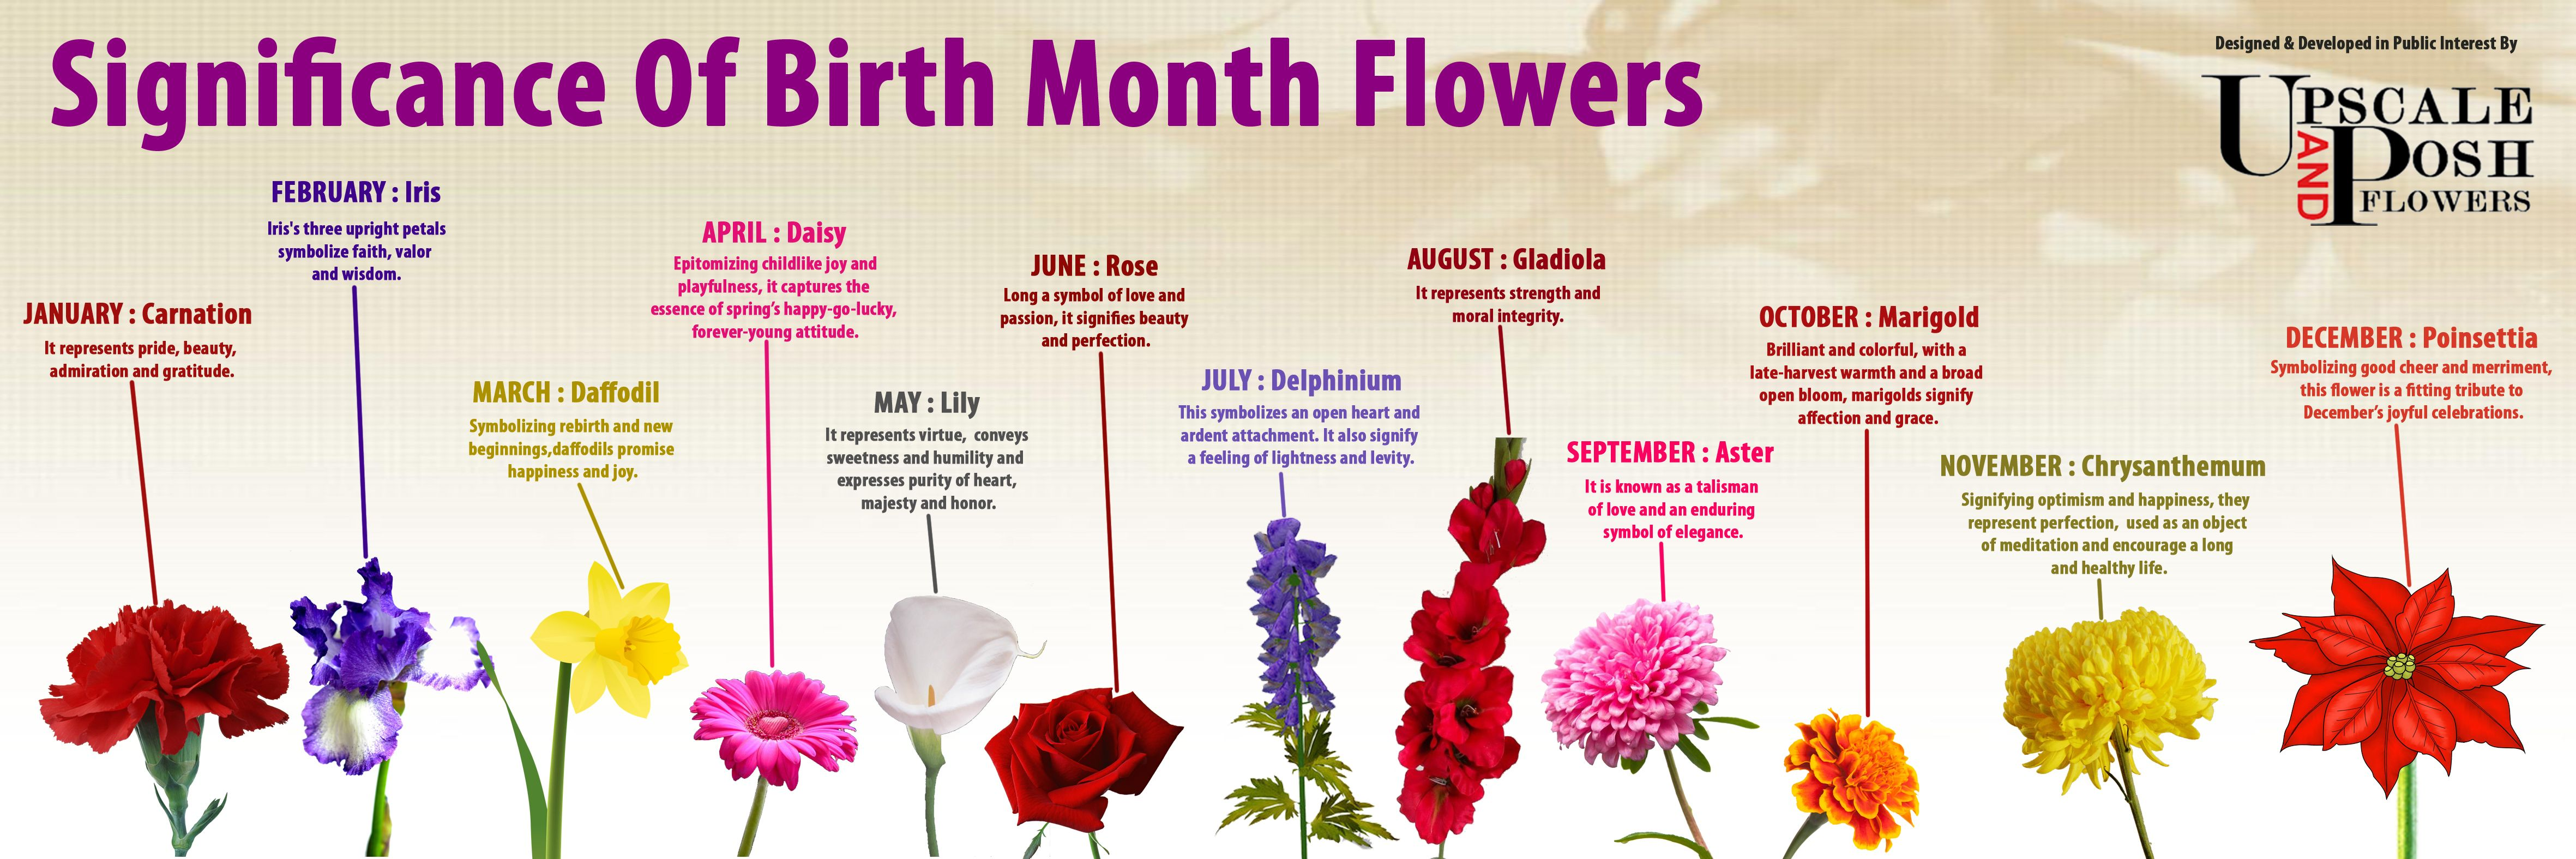 The Significance of Birth Month Flowers A Calendar of